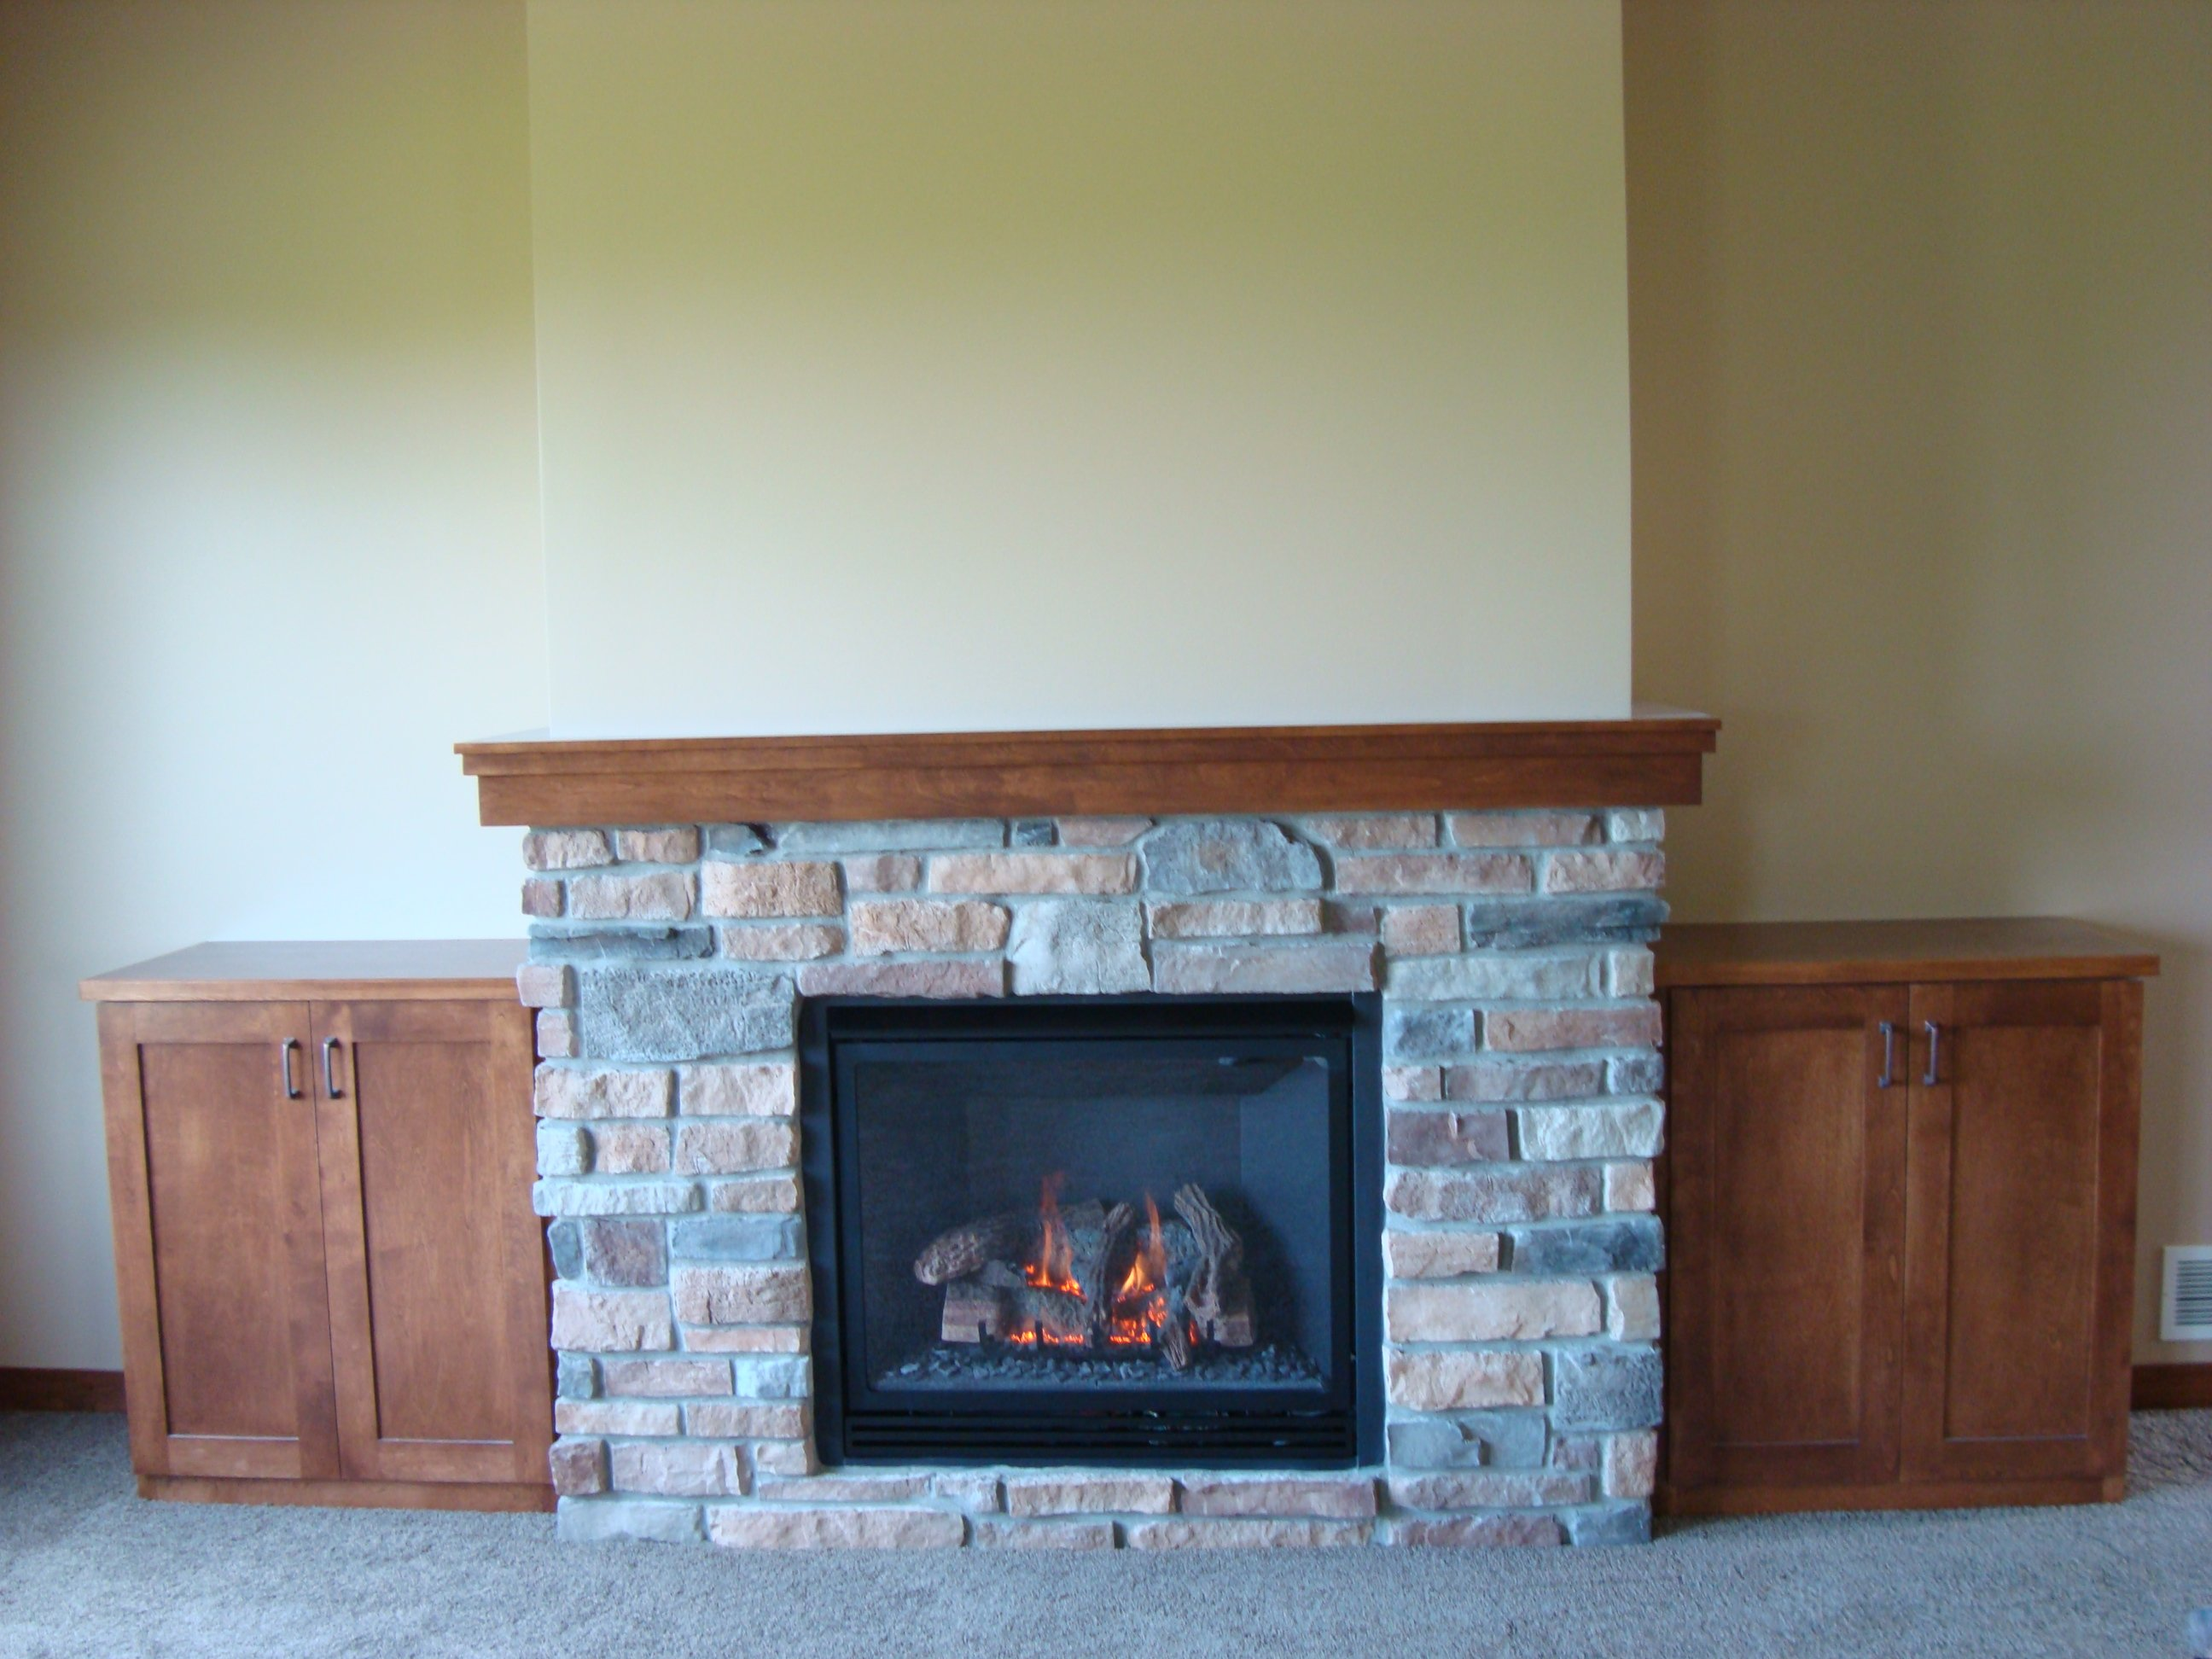 Kozy Heat-Thief River Falls-Traditional Fireplace